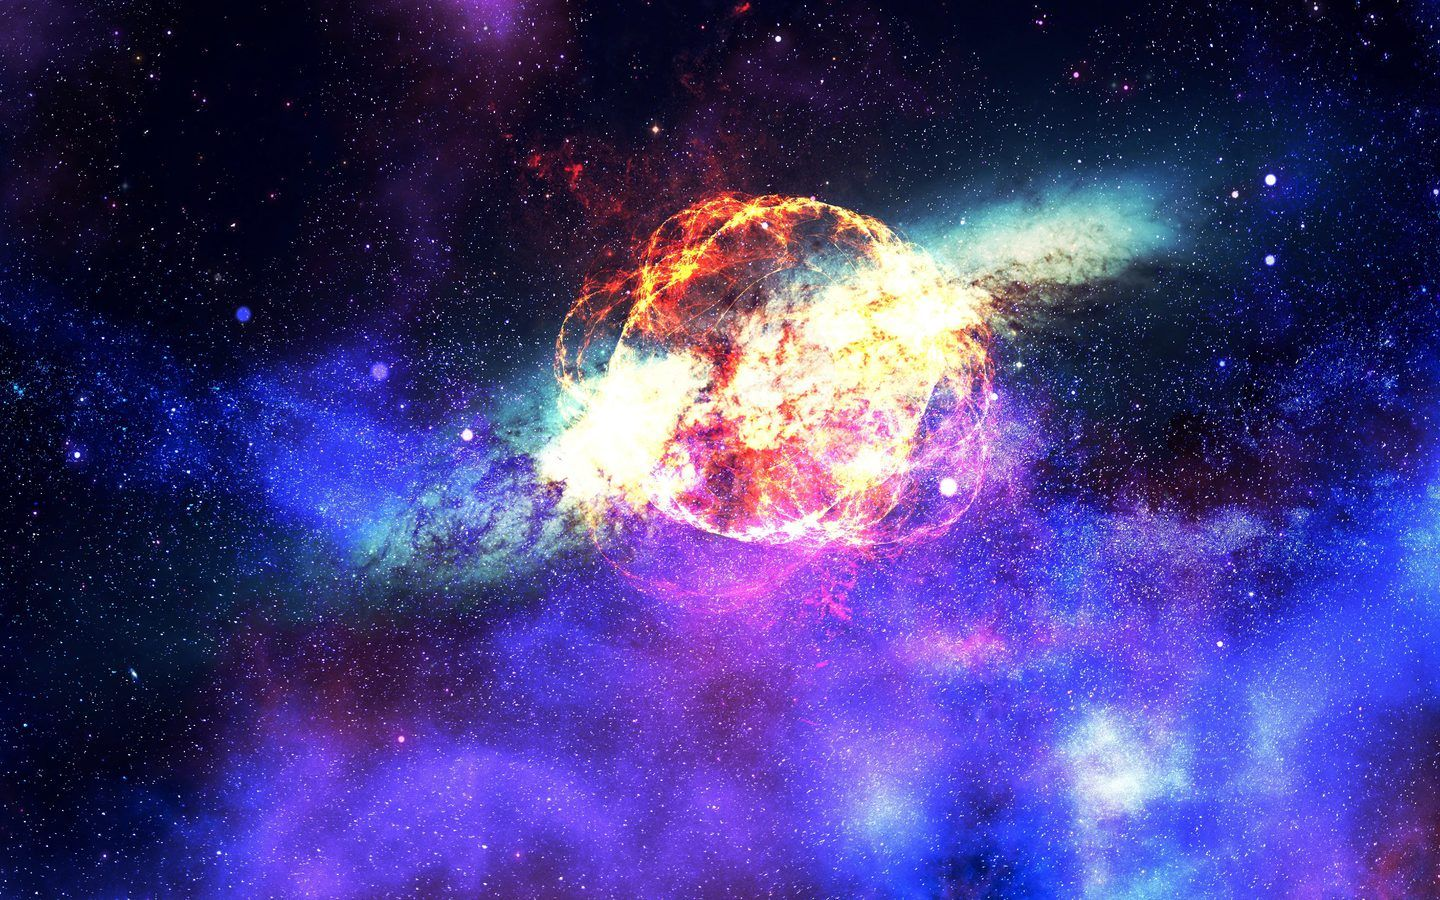 Space 4k Wallpapers Hd Nebula Wallpaper Galaxy Wallpaper Outer Space Wallpaper